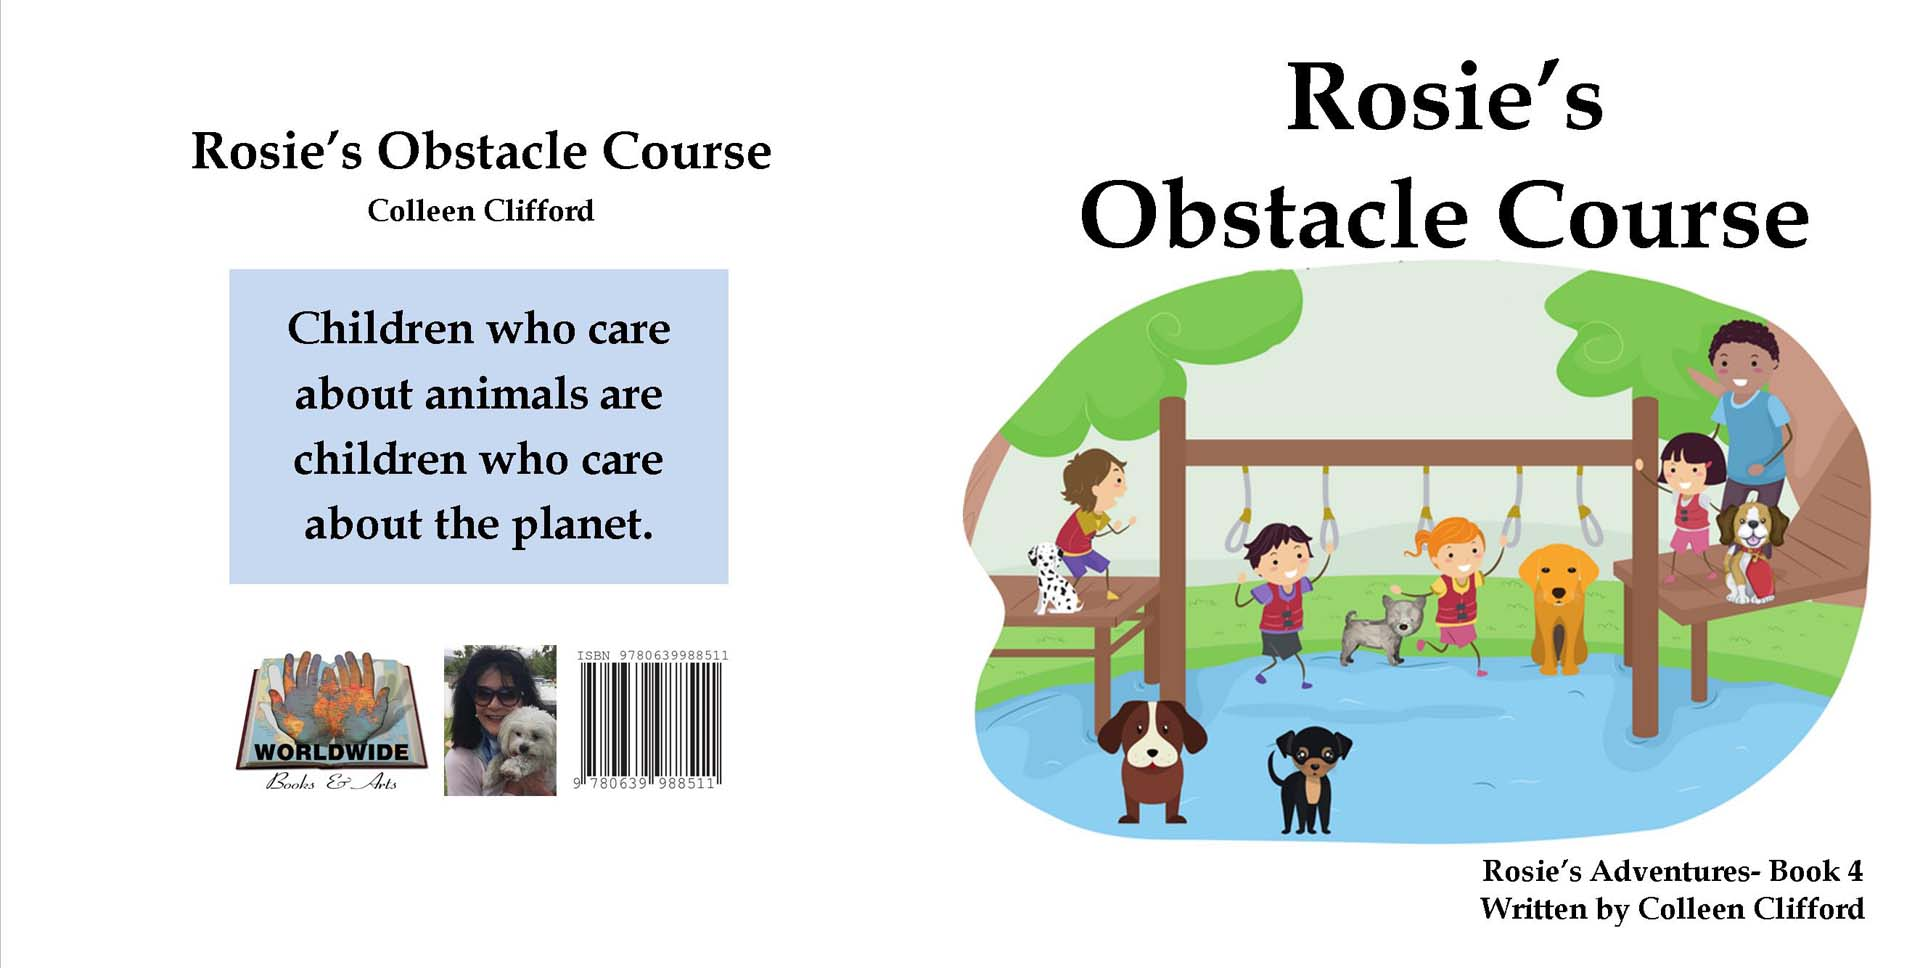 Rosie's obstacle course by Colleen Clifford - R90.00